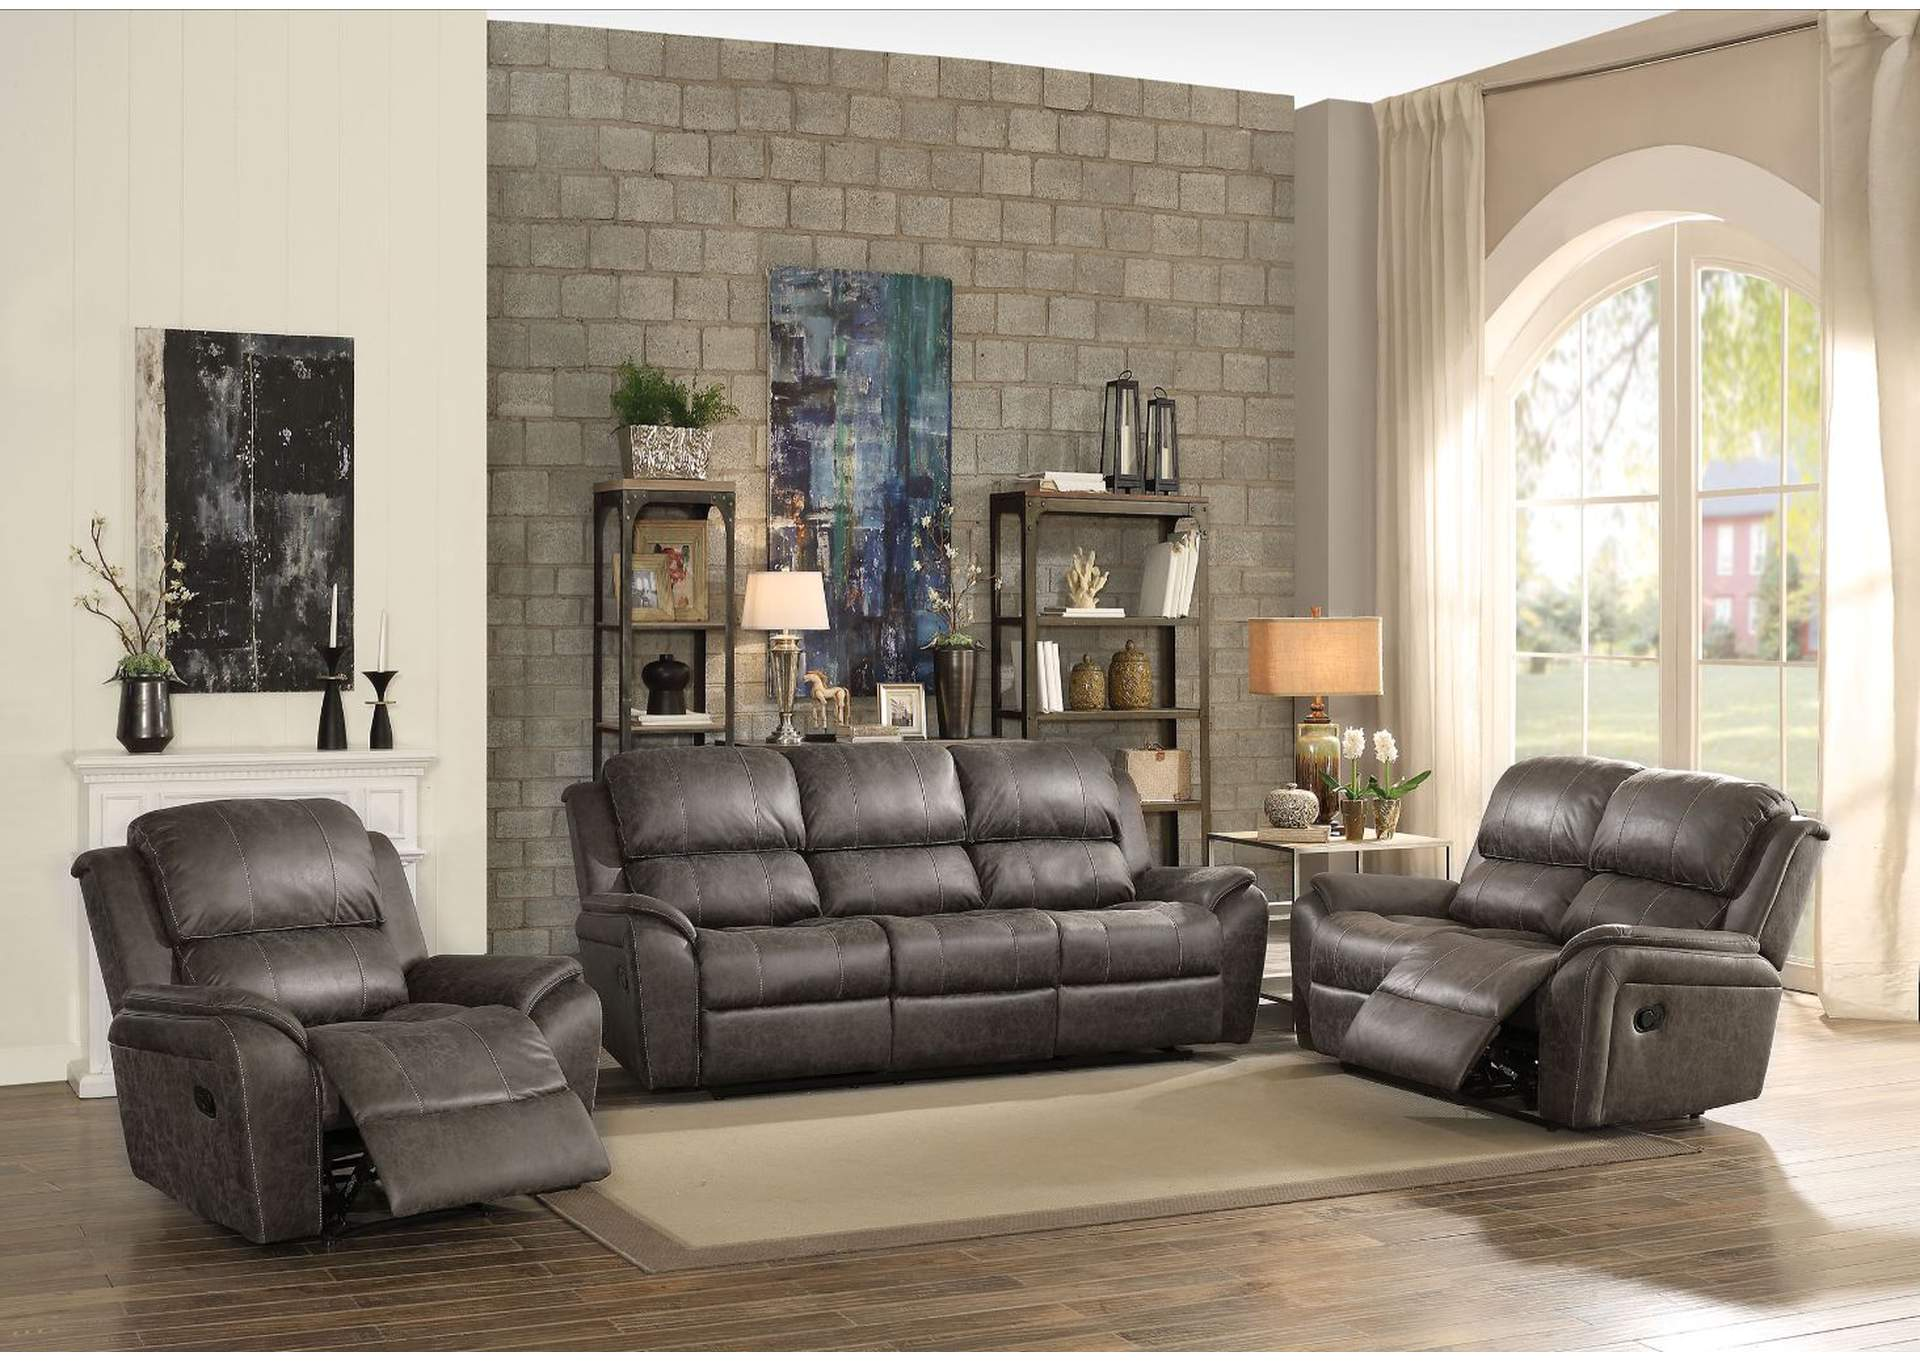 Barnaby Gray Polished Microfiber Sofa,Acme